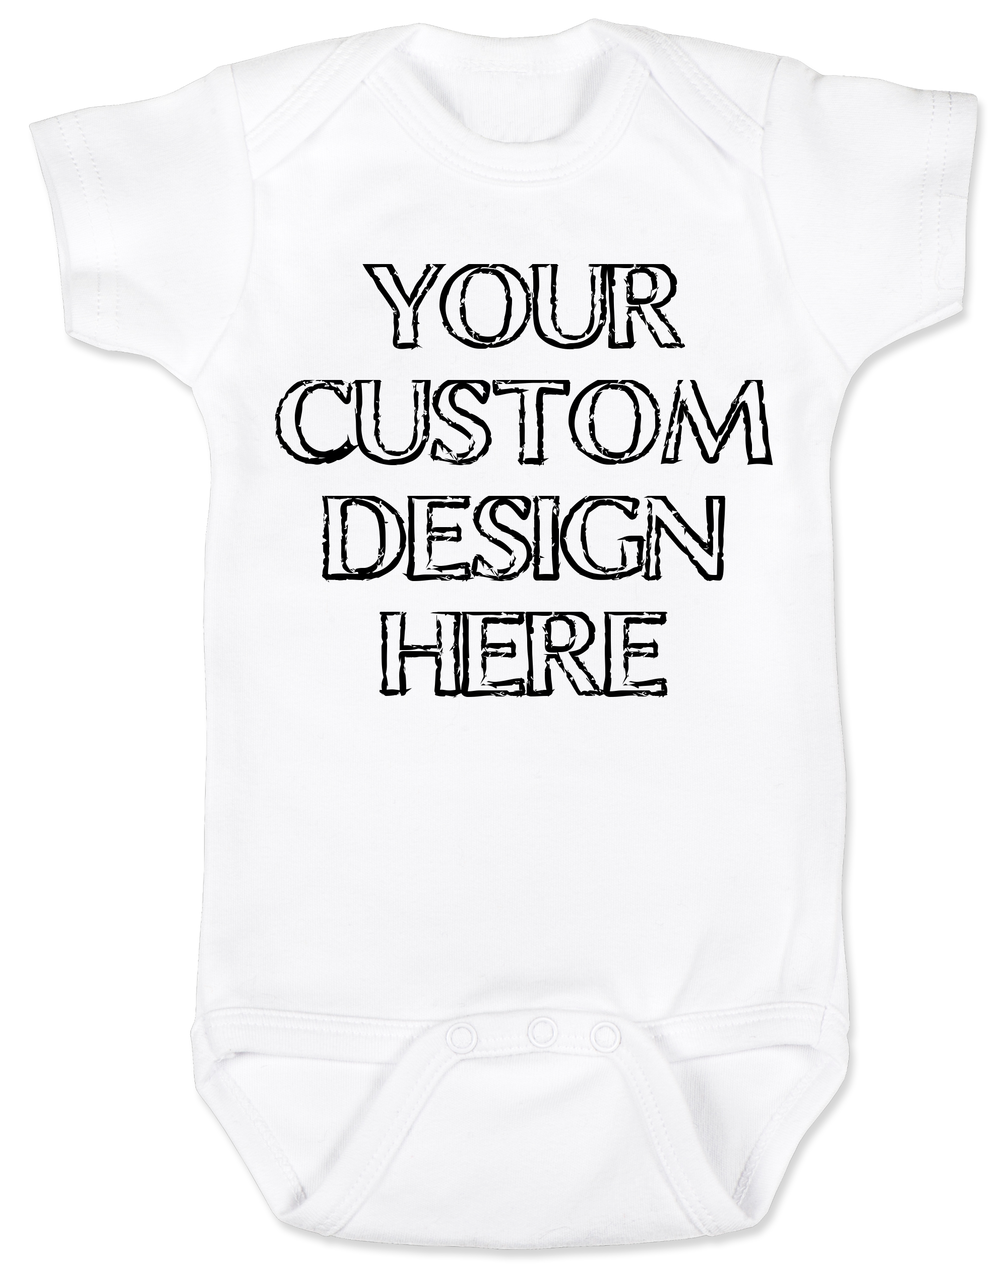 New Baby Gifts Baby Clothes Cotton Made in USA Custom Baby Bodysuit Baby Gifts